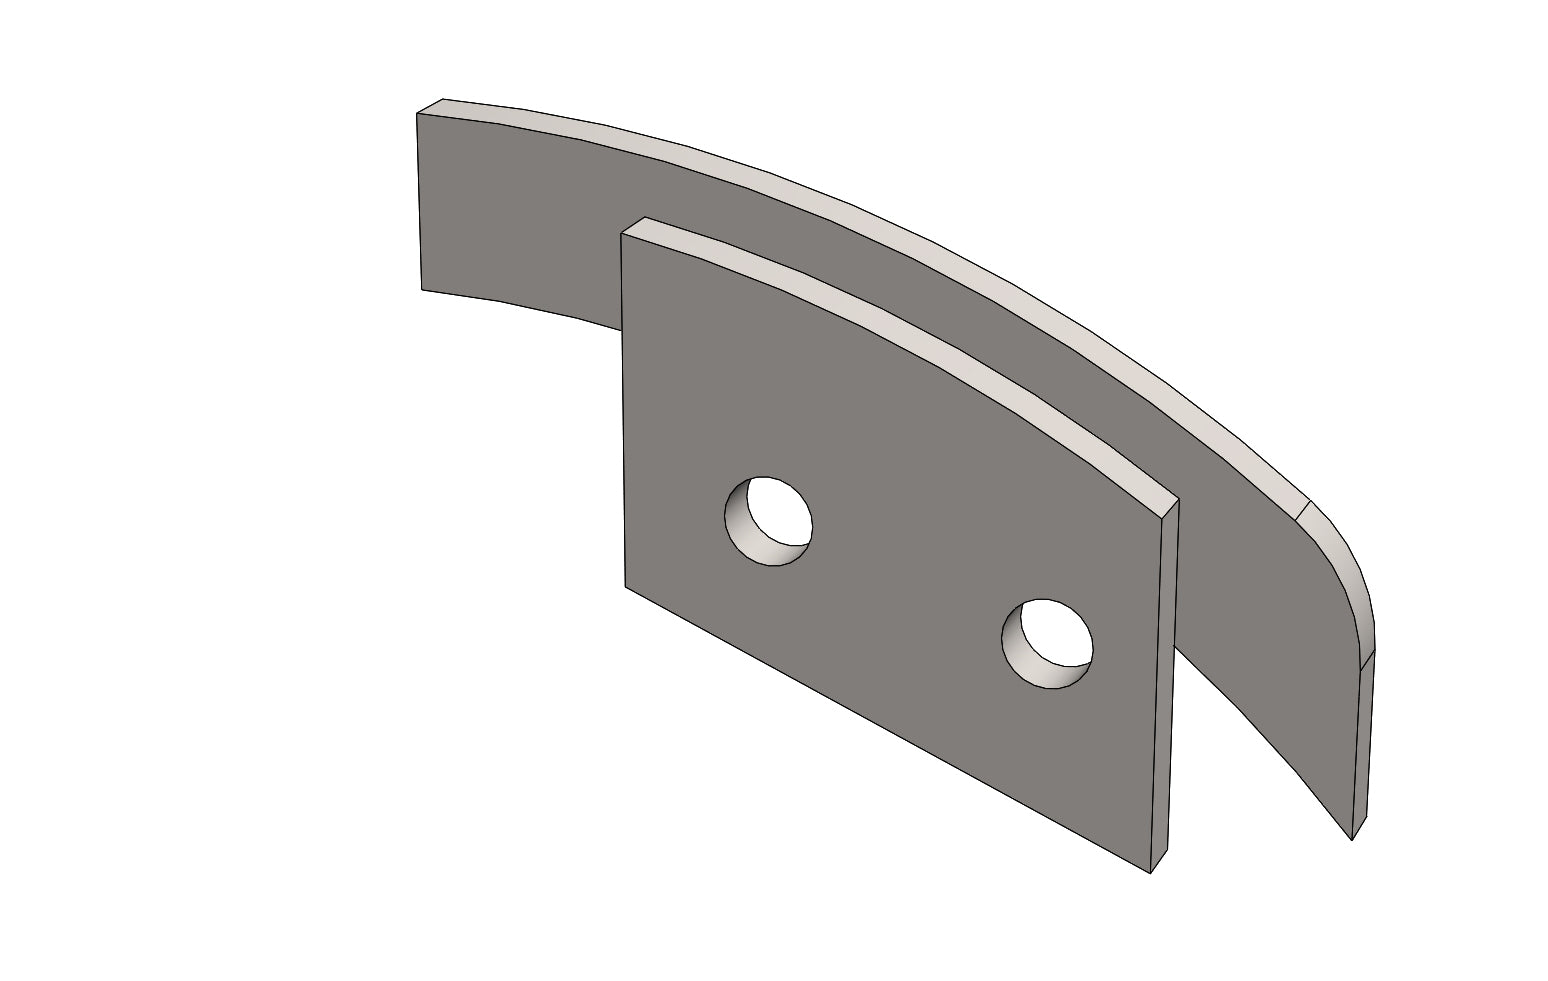 C00828 - LOBE and BRACKET - King CF100 Spare Part